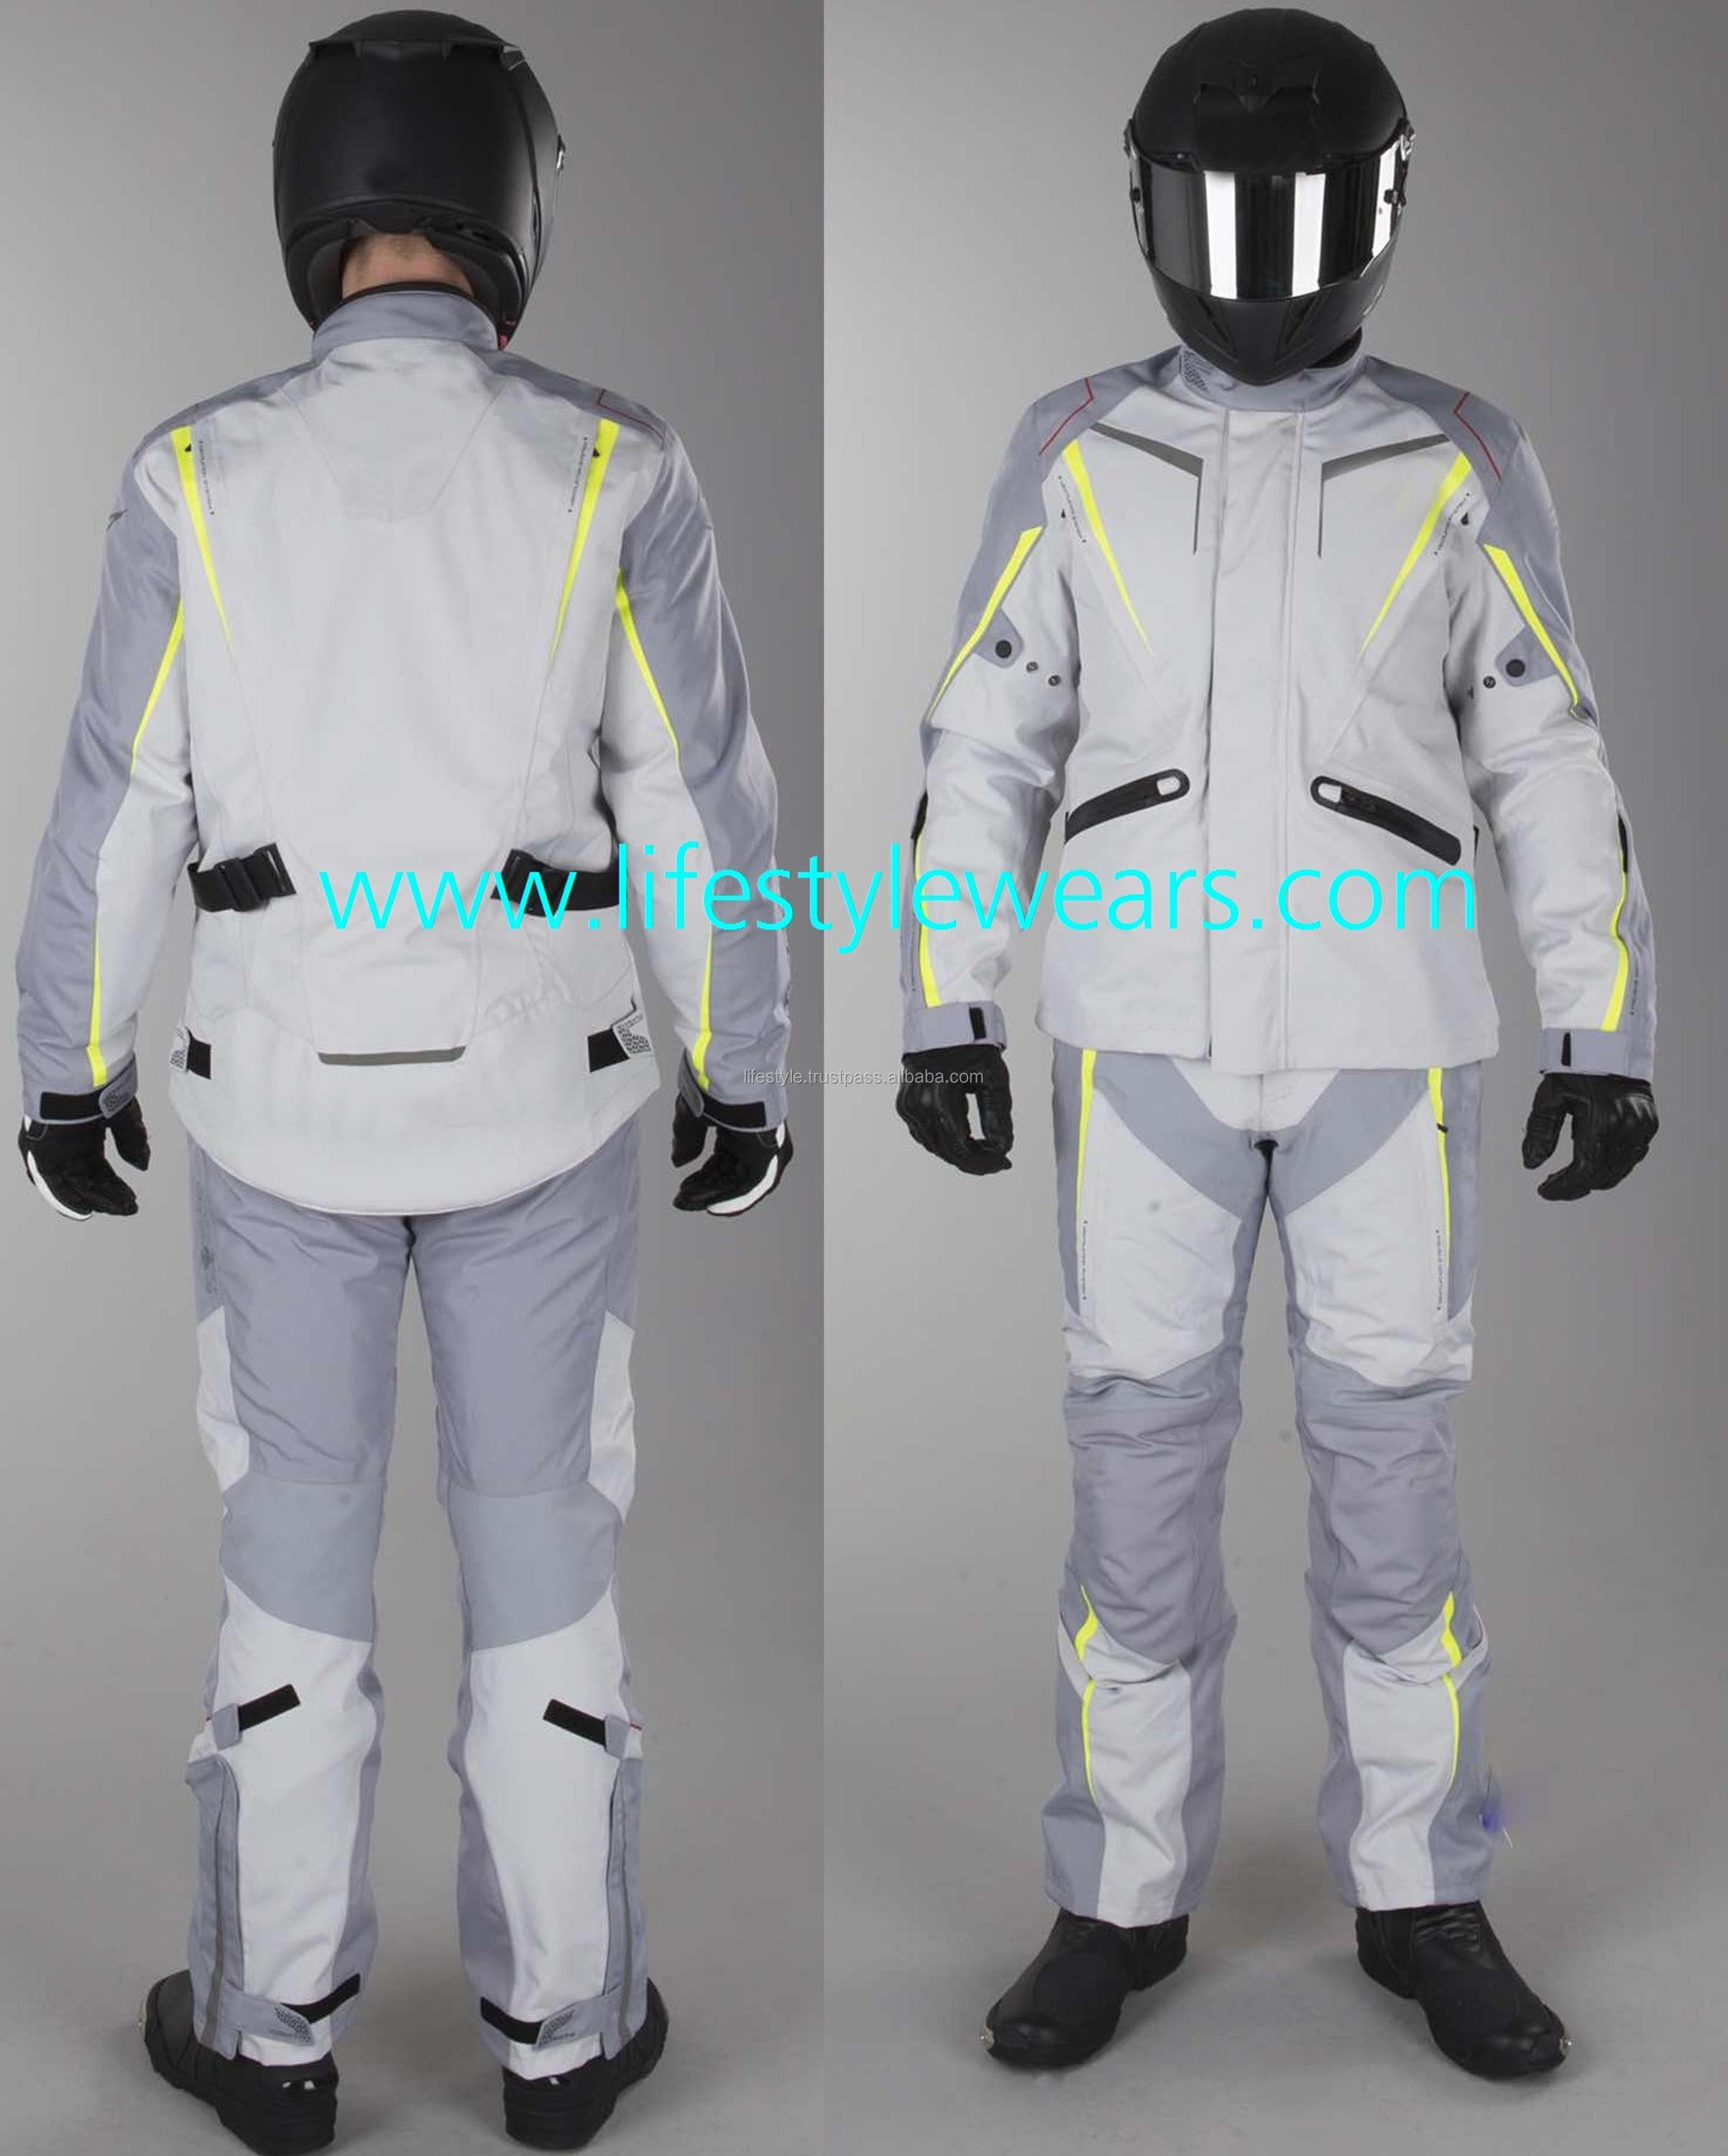 e4b6bbf37 Fishing Waterproof Suits Breathable Waterproof Snow Suit Winter ...